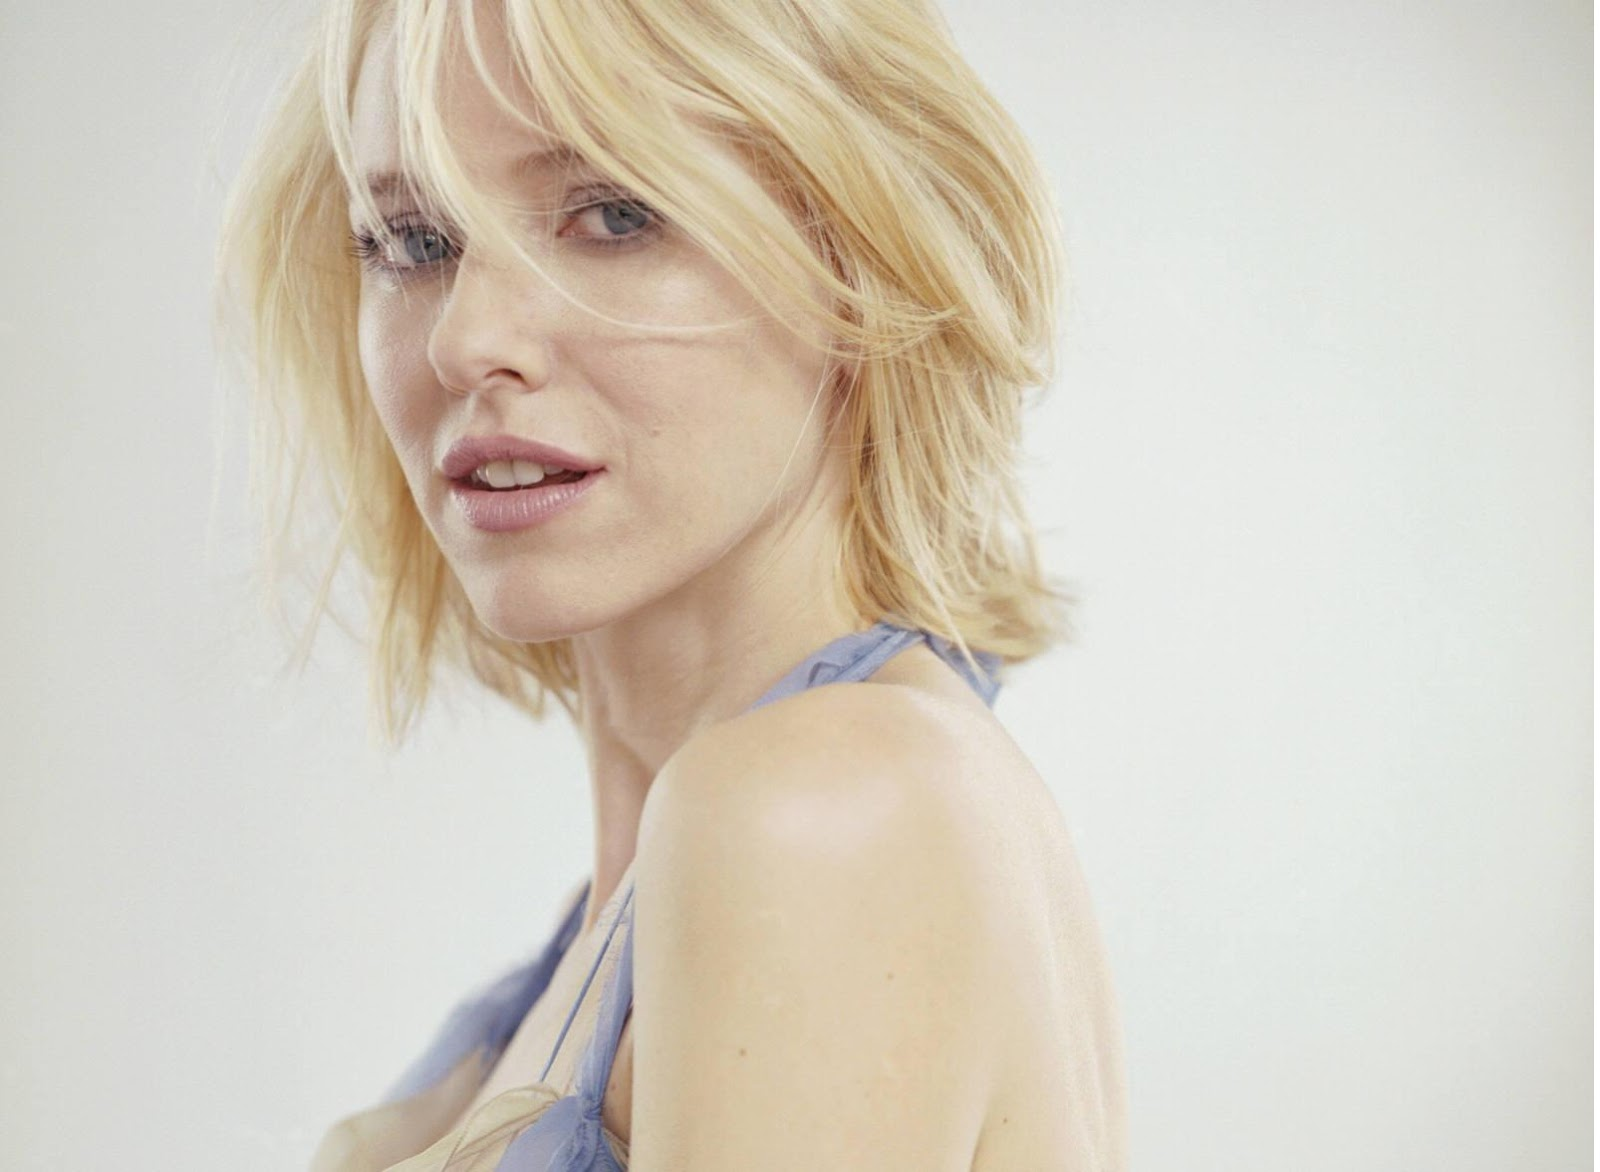 Naomi Watts HD Wallpapers Download Theroyalspeaker 1600x1172